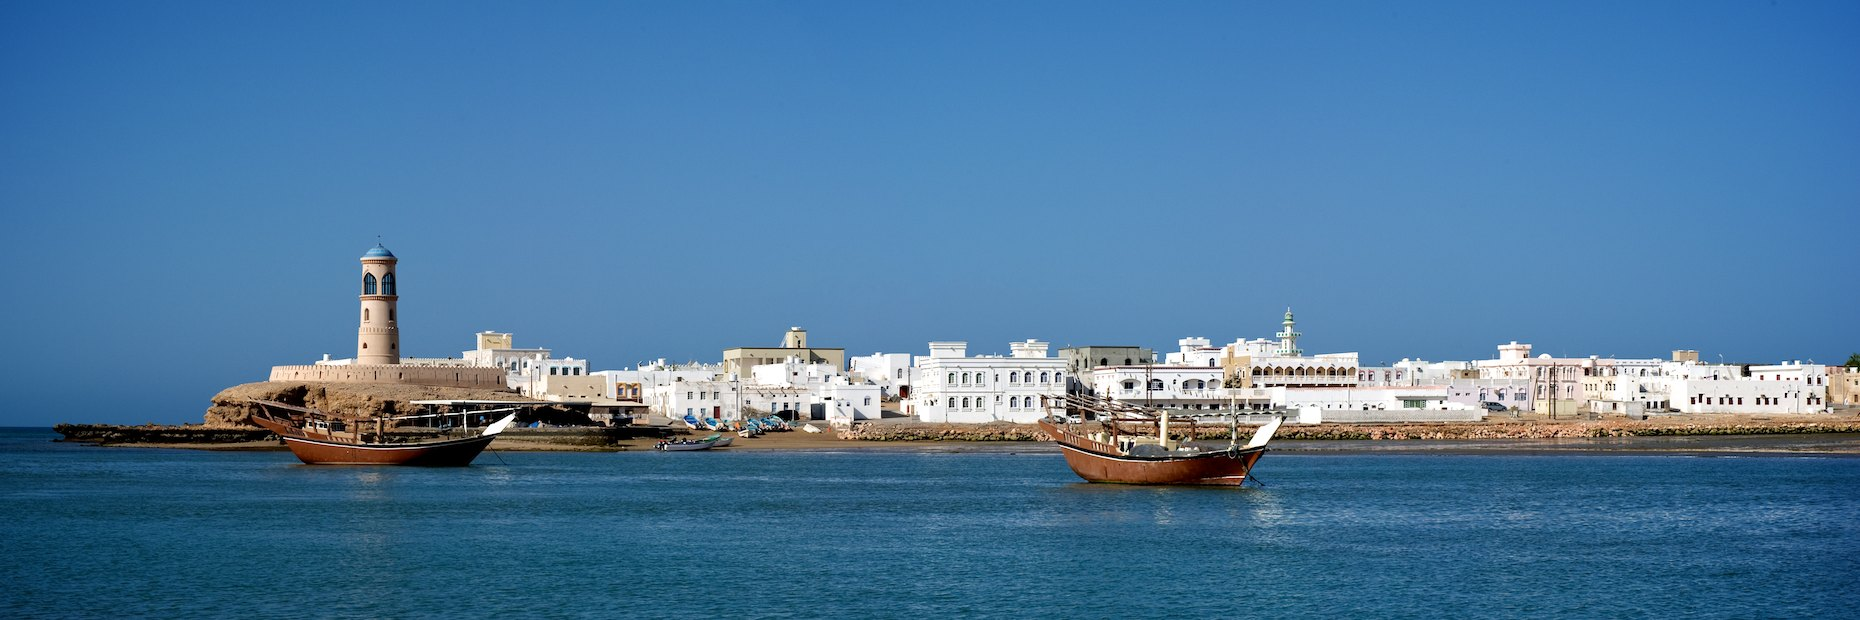 Oman Sur harbor panorama